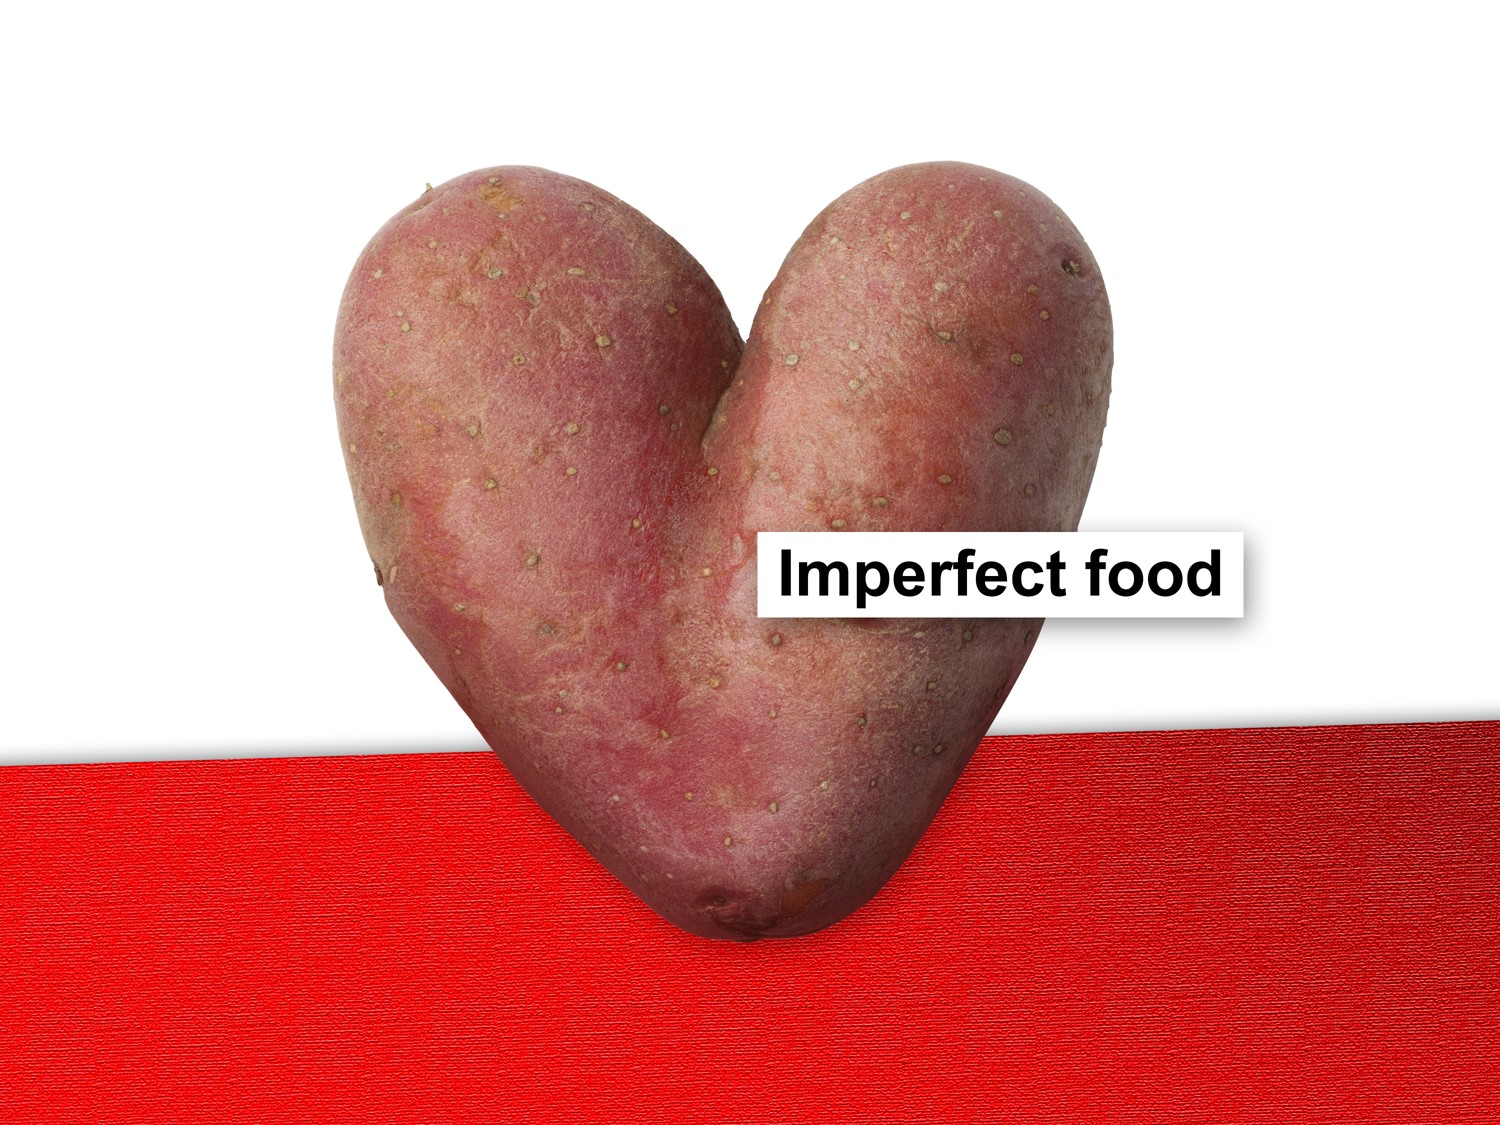 Imperfect food